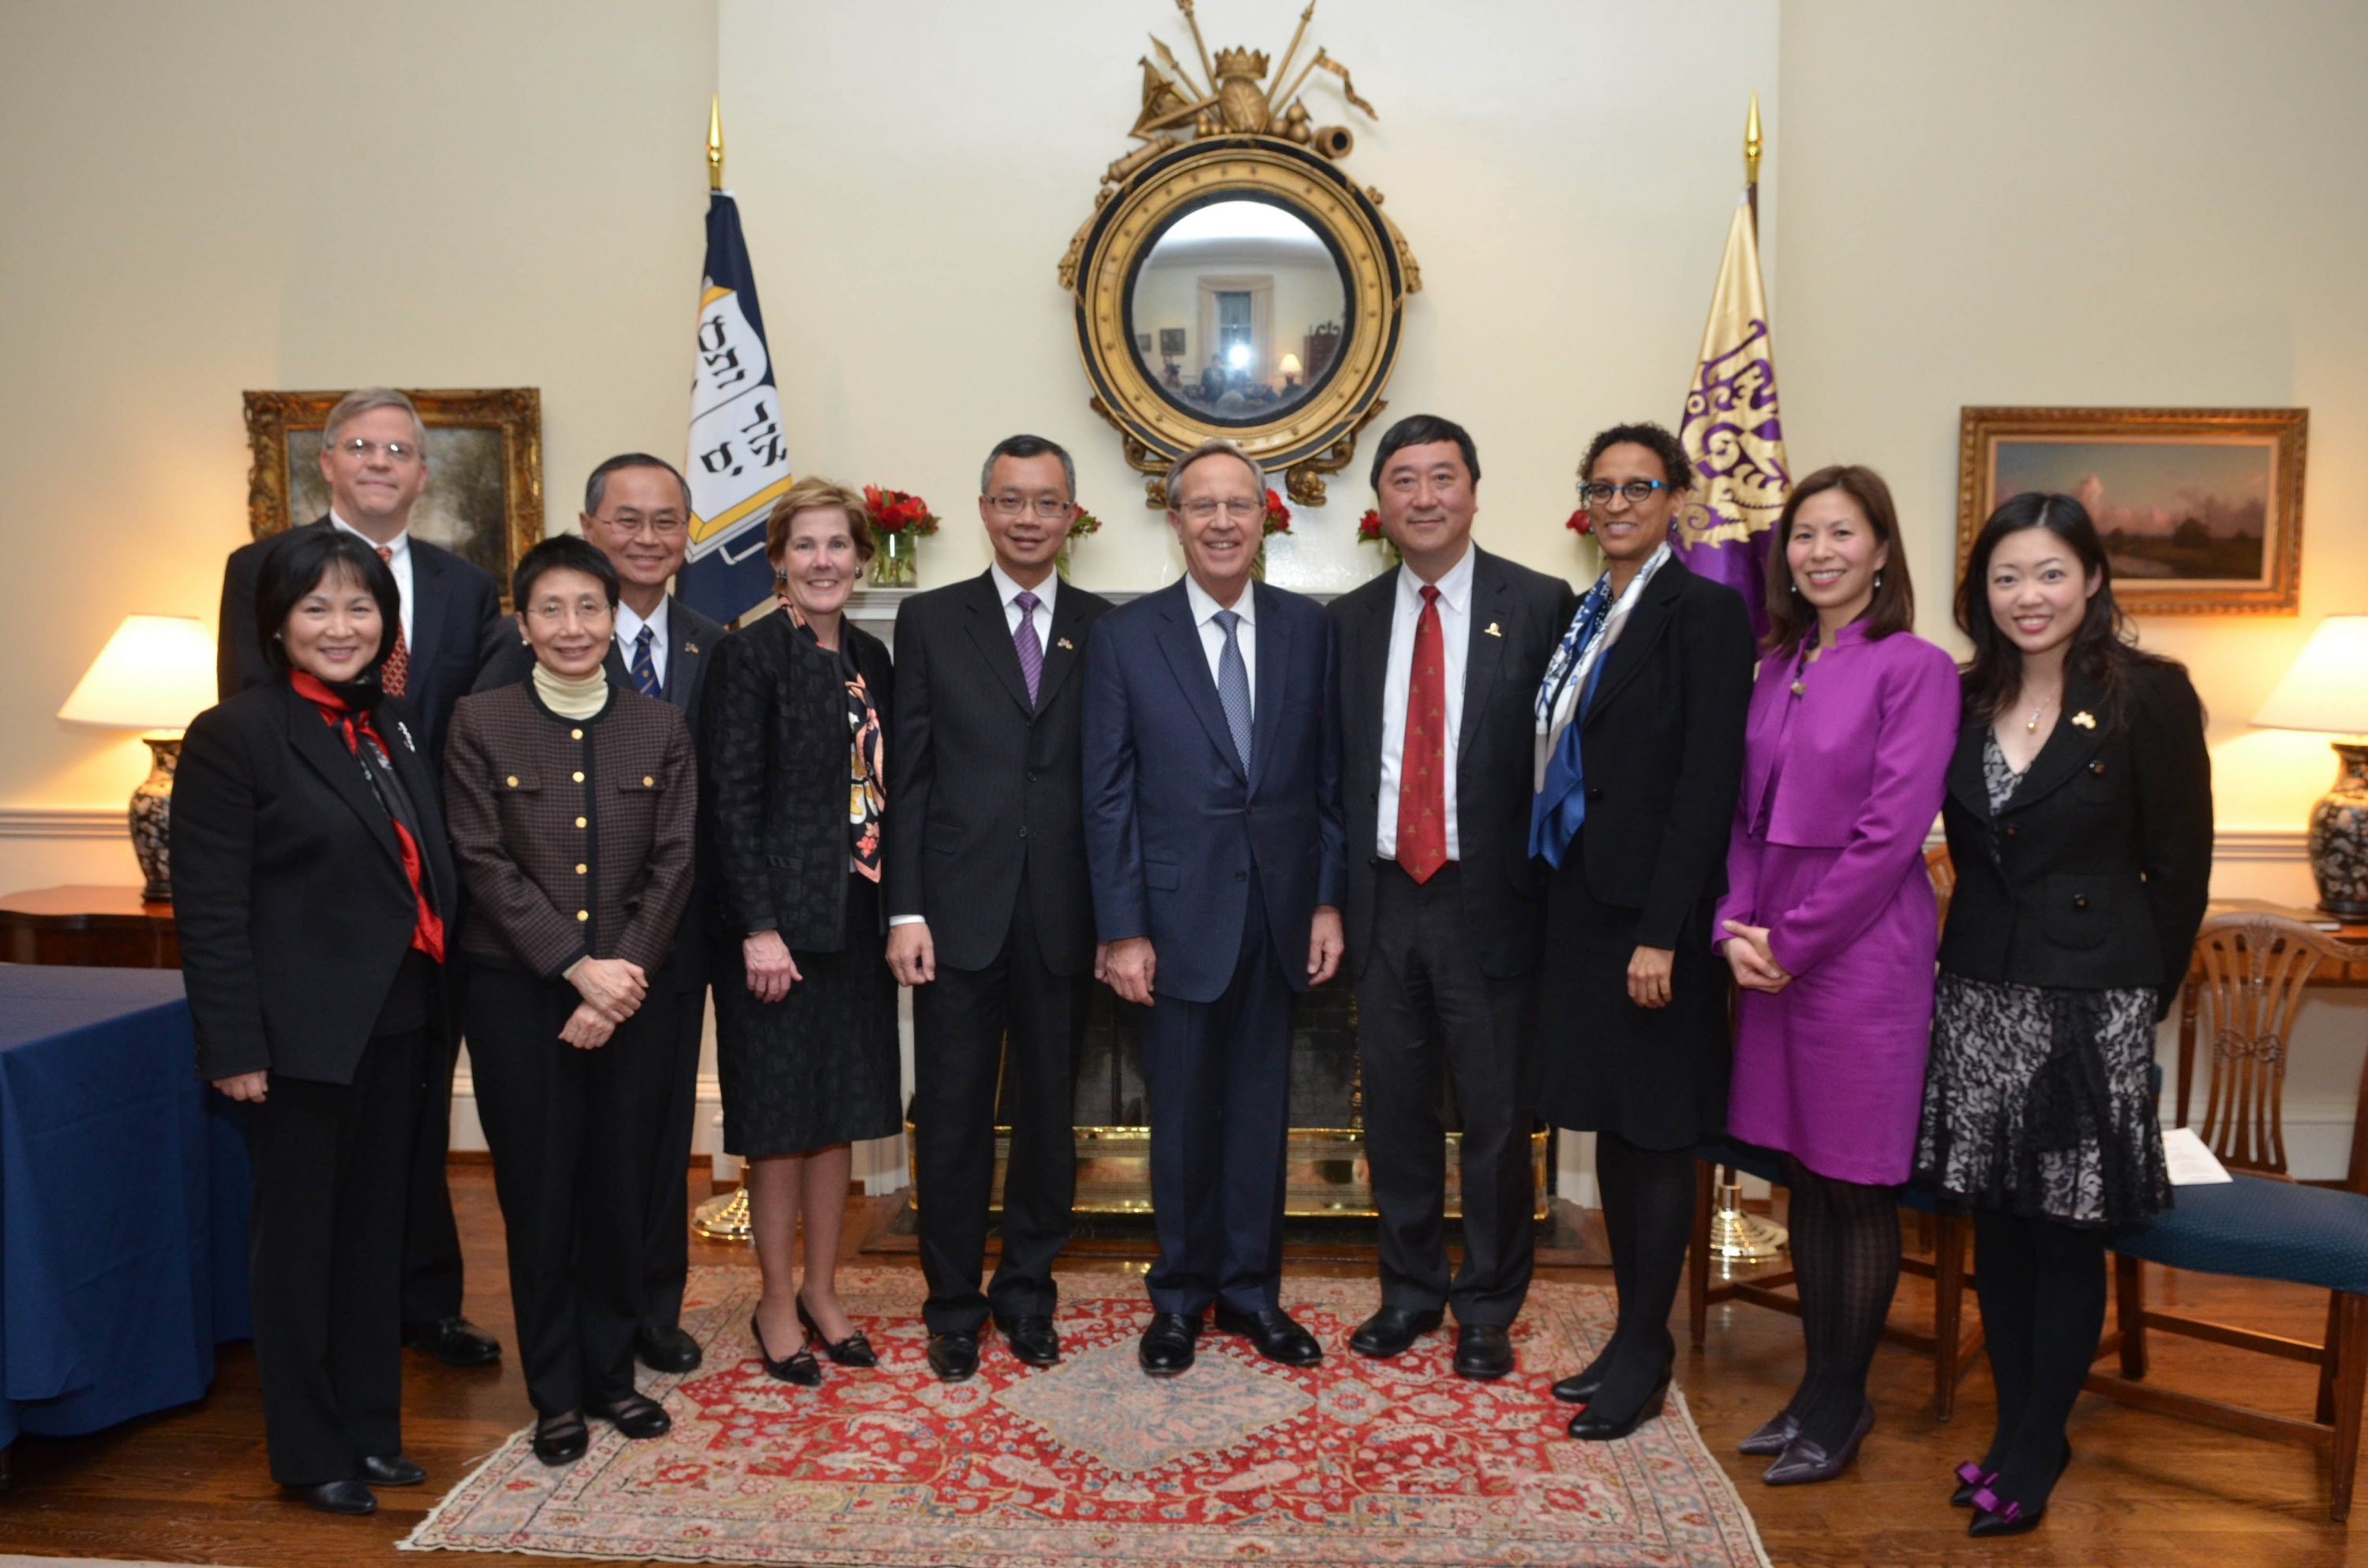 Members of CUHK delegation and Yale University pose for a group photo.